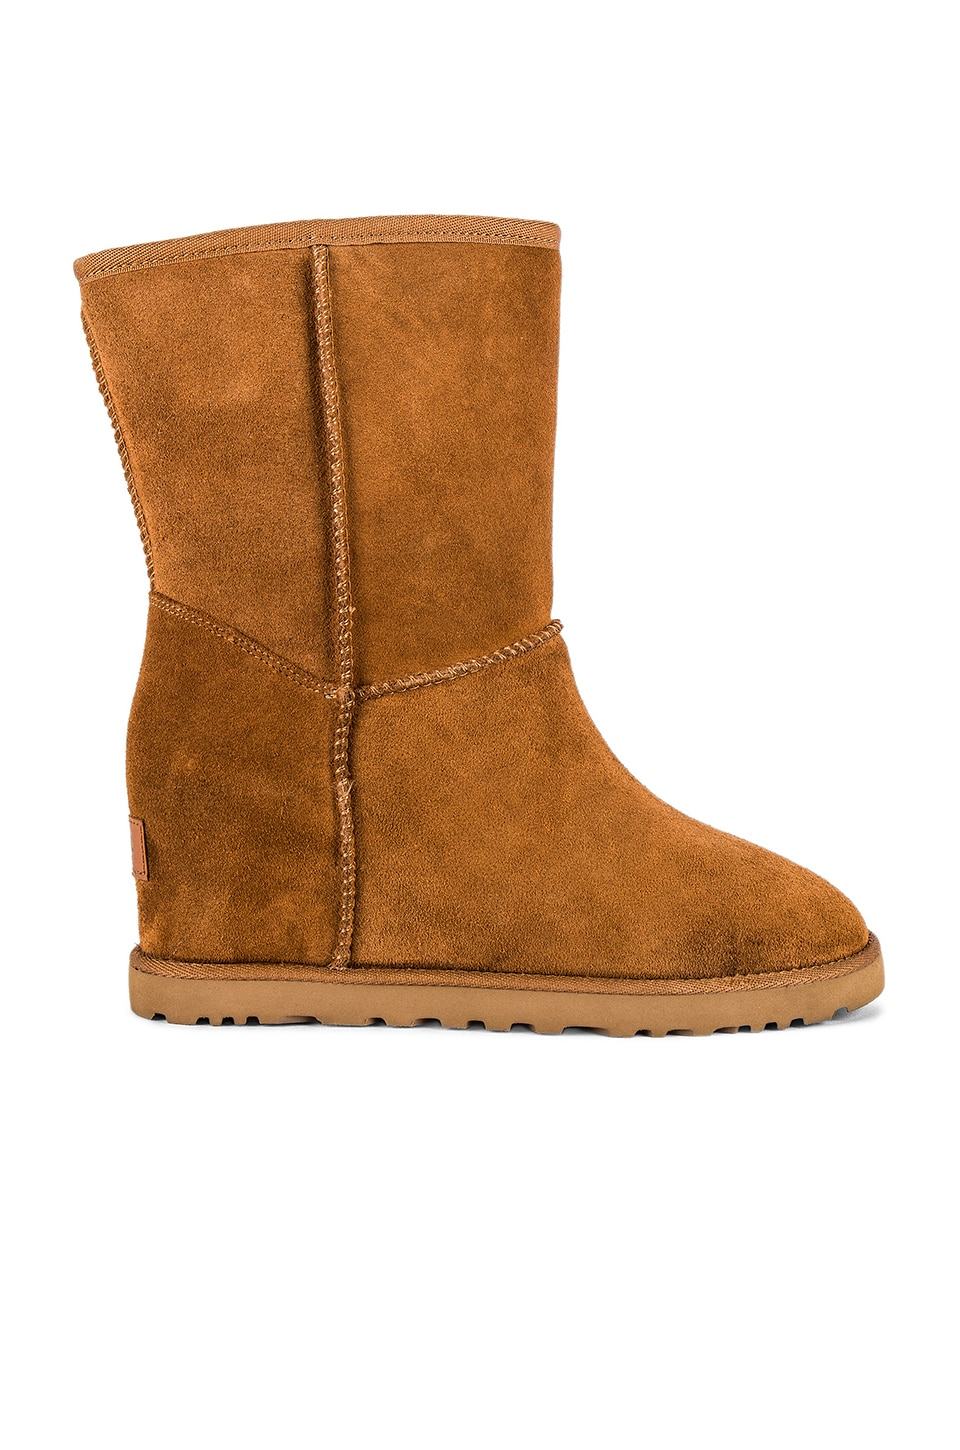 UGG Classic Femme Short Boot in Chestnut